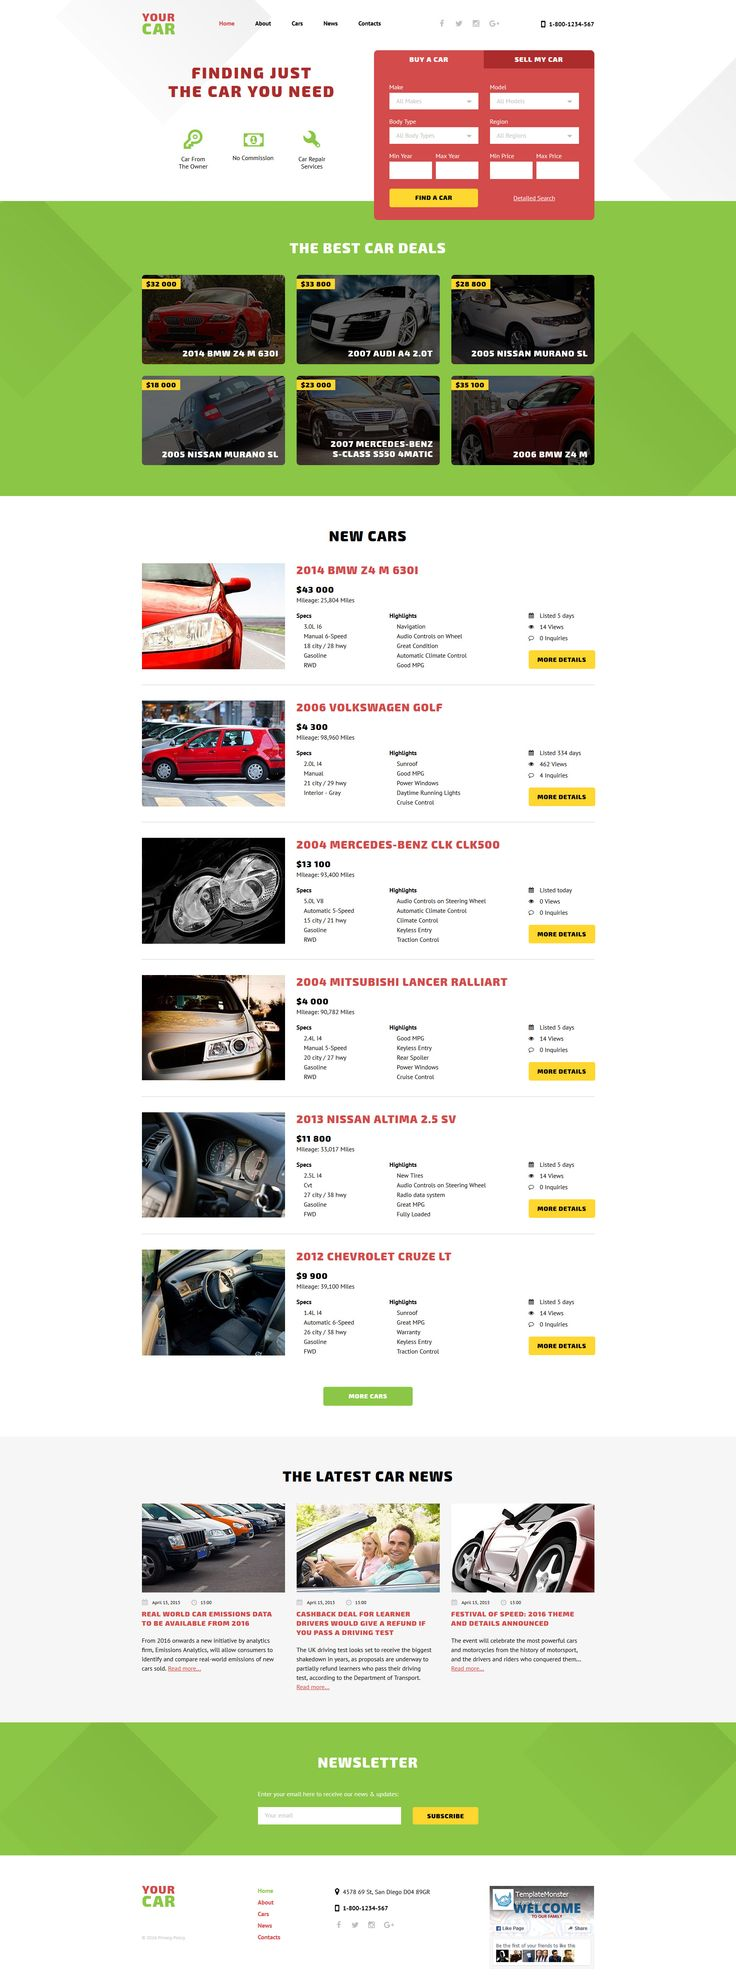 your car website template